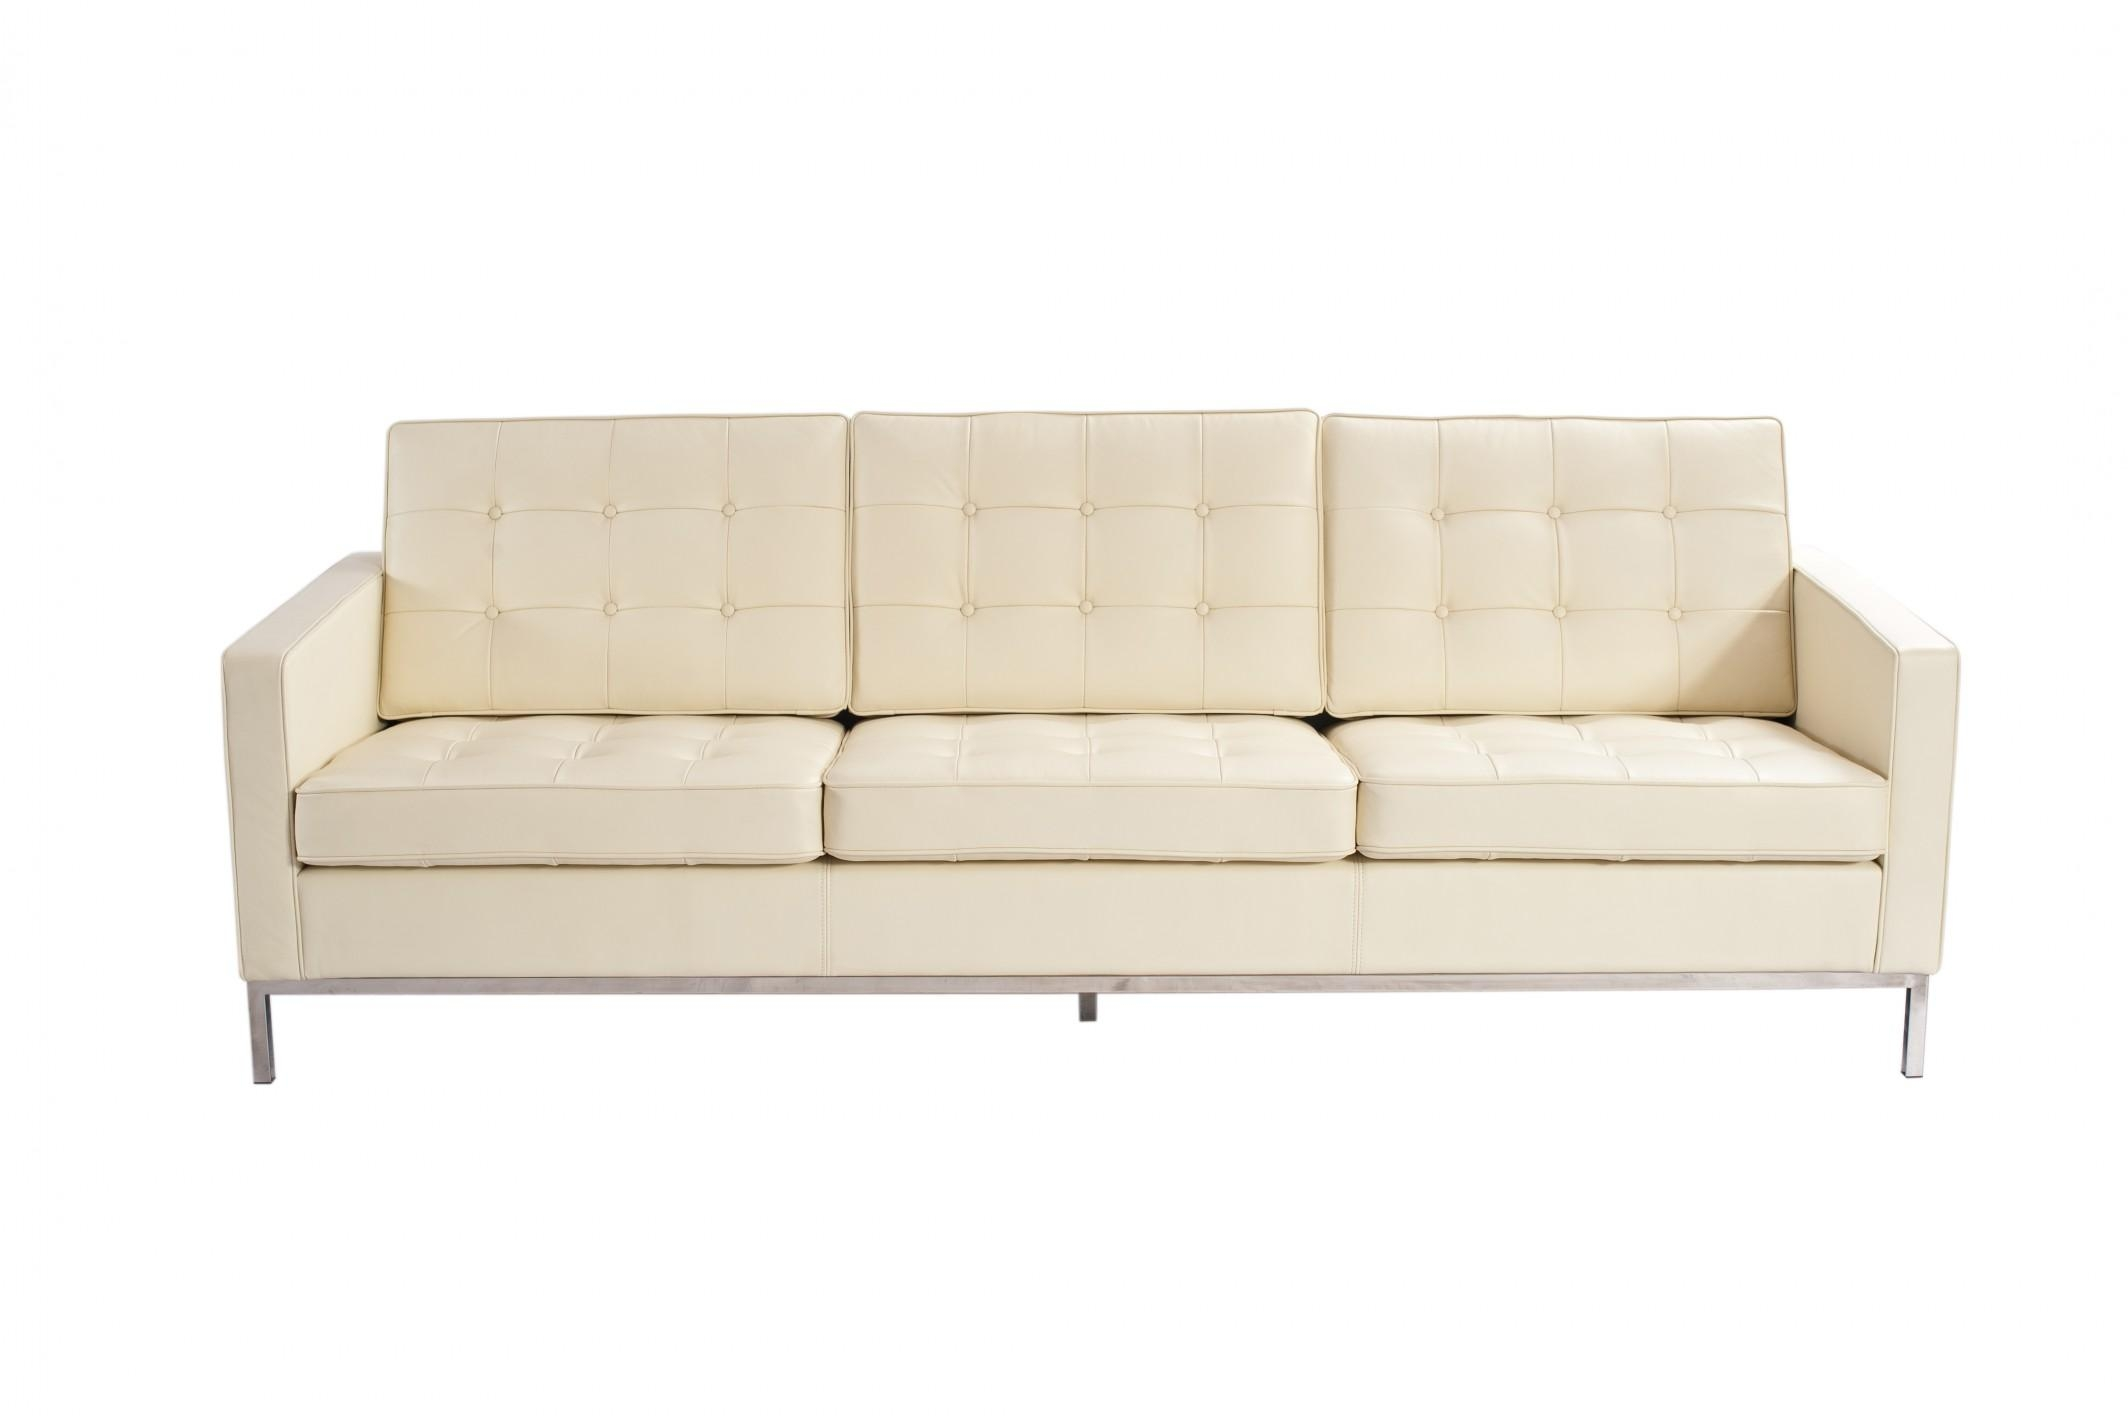 Florence Knoll 3 Seater Sofa | Crepeloversca With Florence Knoll 3 Seater Sofas (View 4 of 20)